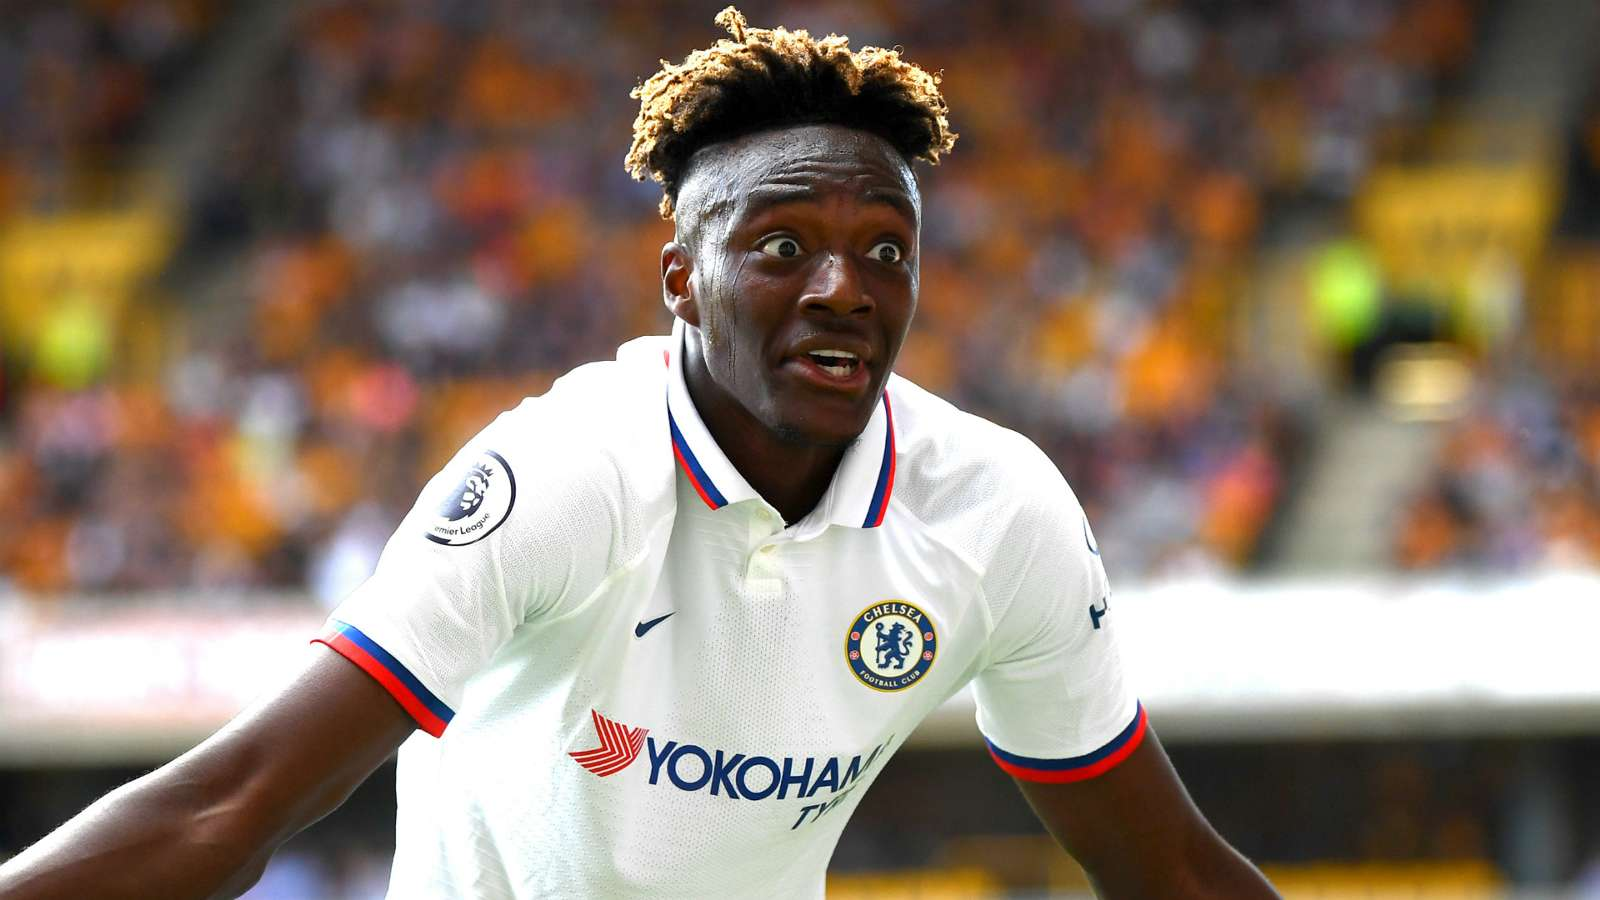 Abraham scored a hattrick in Chelsea's 5-2 victory at Wolves on Saturday. (PHOTO/Courtesy)